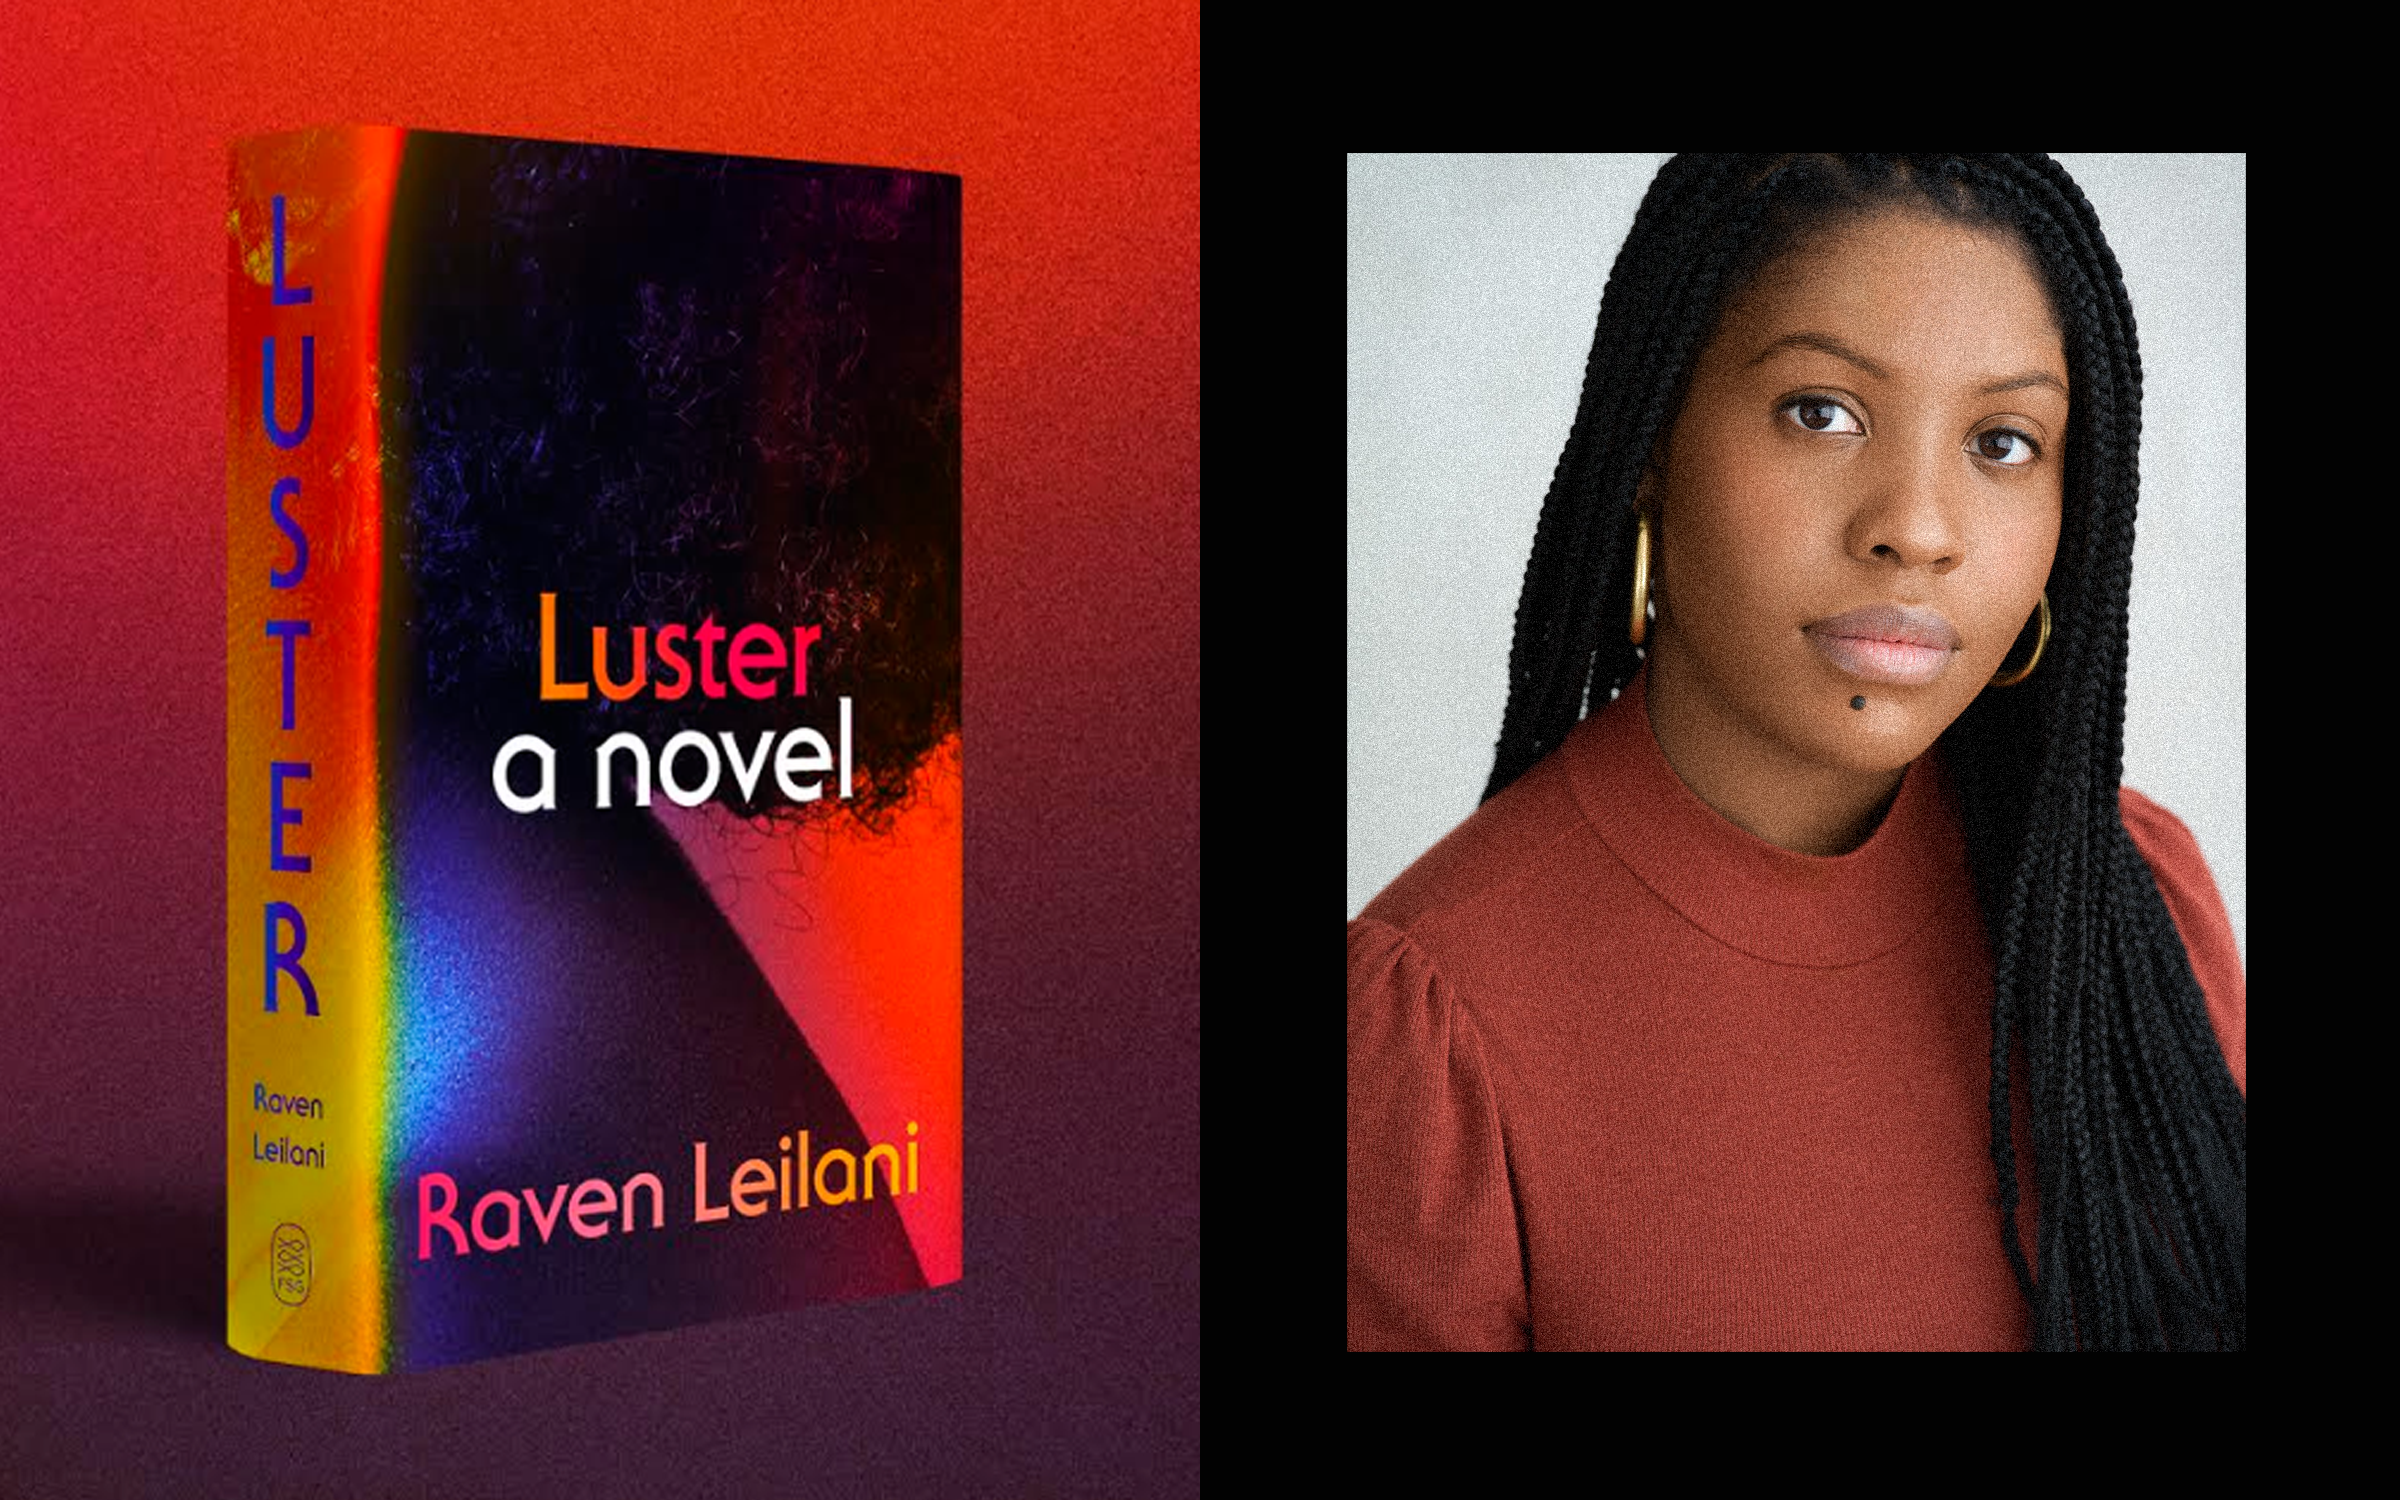 Side-by-side image of the book cover of Luster, along with a portrait shot of Raven Leilani.